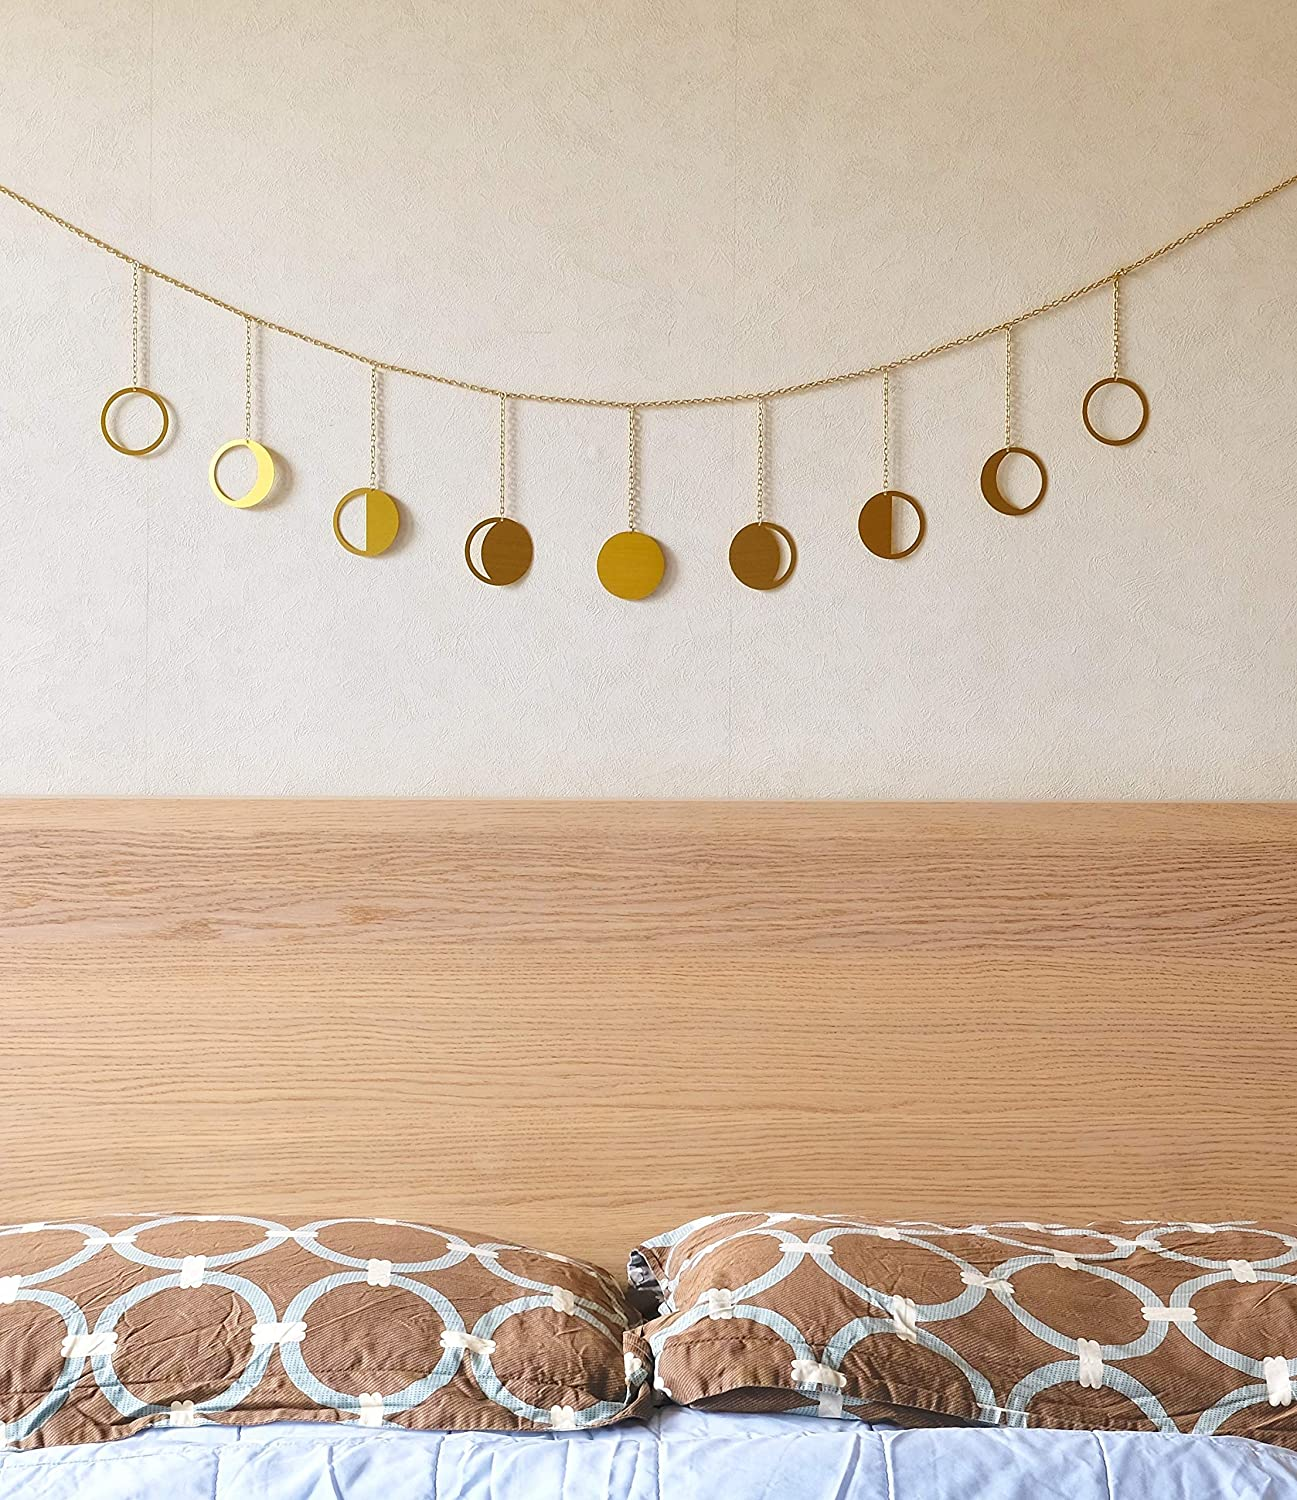 FURNISHOP Boho Moon Decor Wall Decorations - Moon Phase Wall Hanging Decor - Moon Phases Wall Art - Brushed Gold Moon Garland - Metal Moon Cycle Banner - Boho Wall Decor for Bedroom, Dorm, Living Room